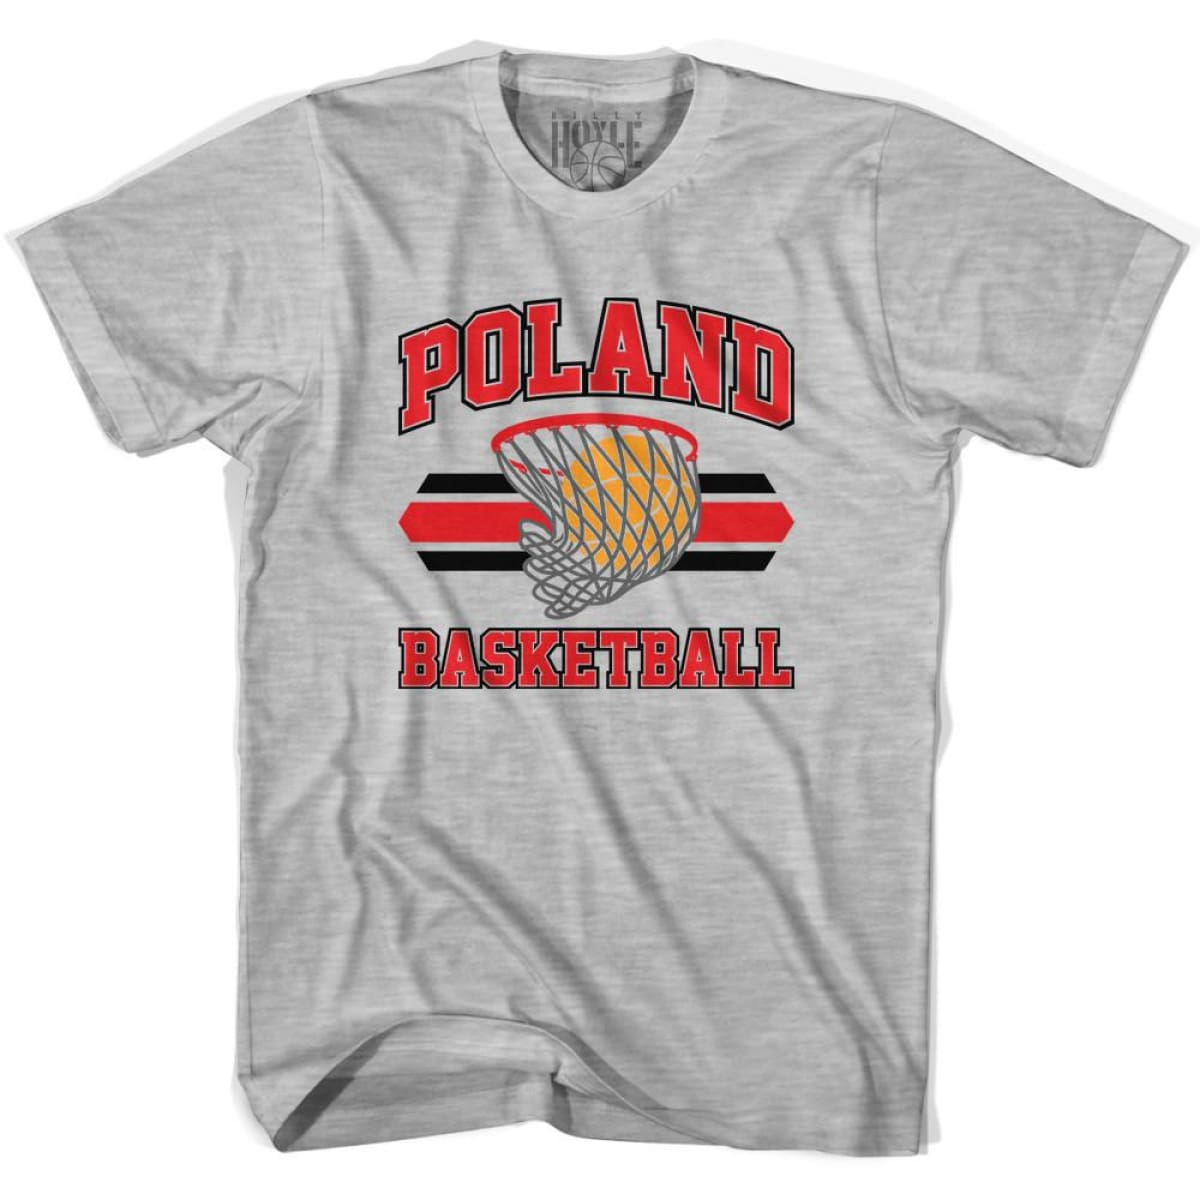 Poland 90s Basketball T-shirts - Grey Heather / Youth X-Small - Basketball T-shirt